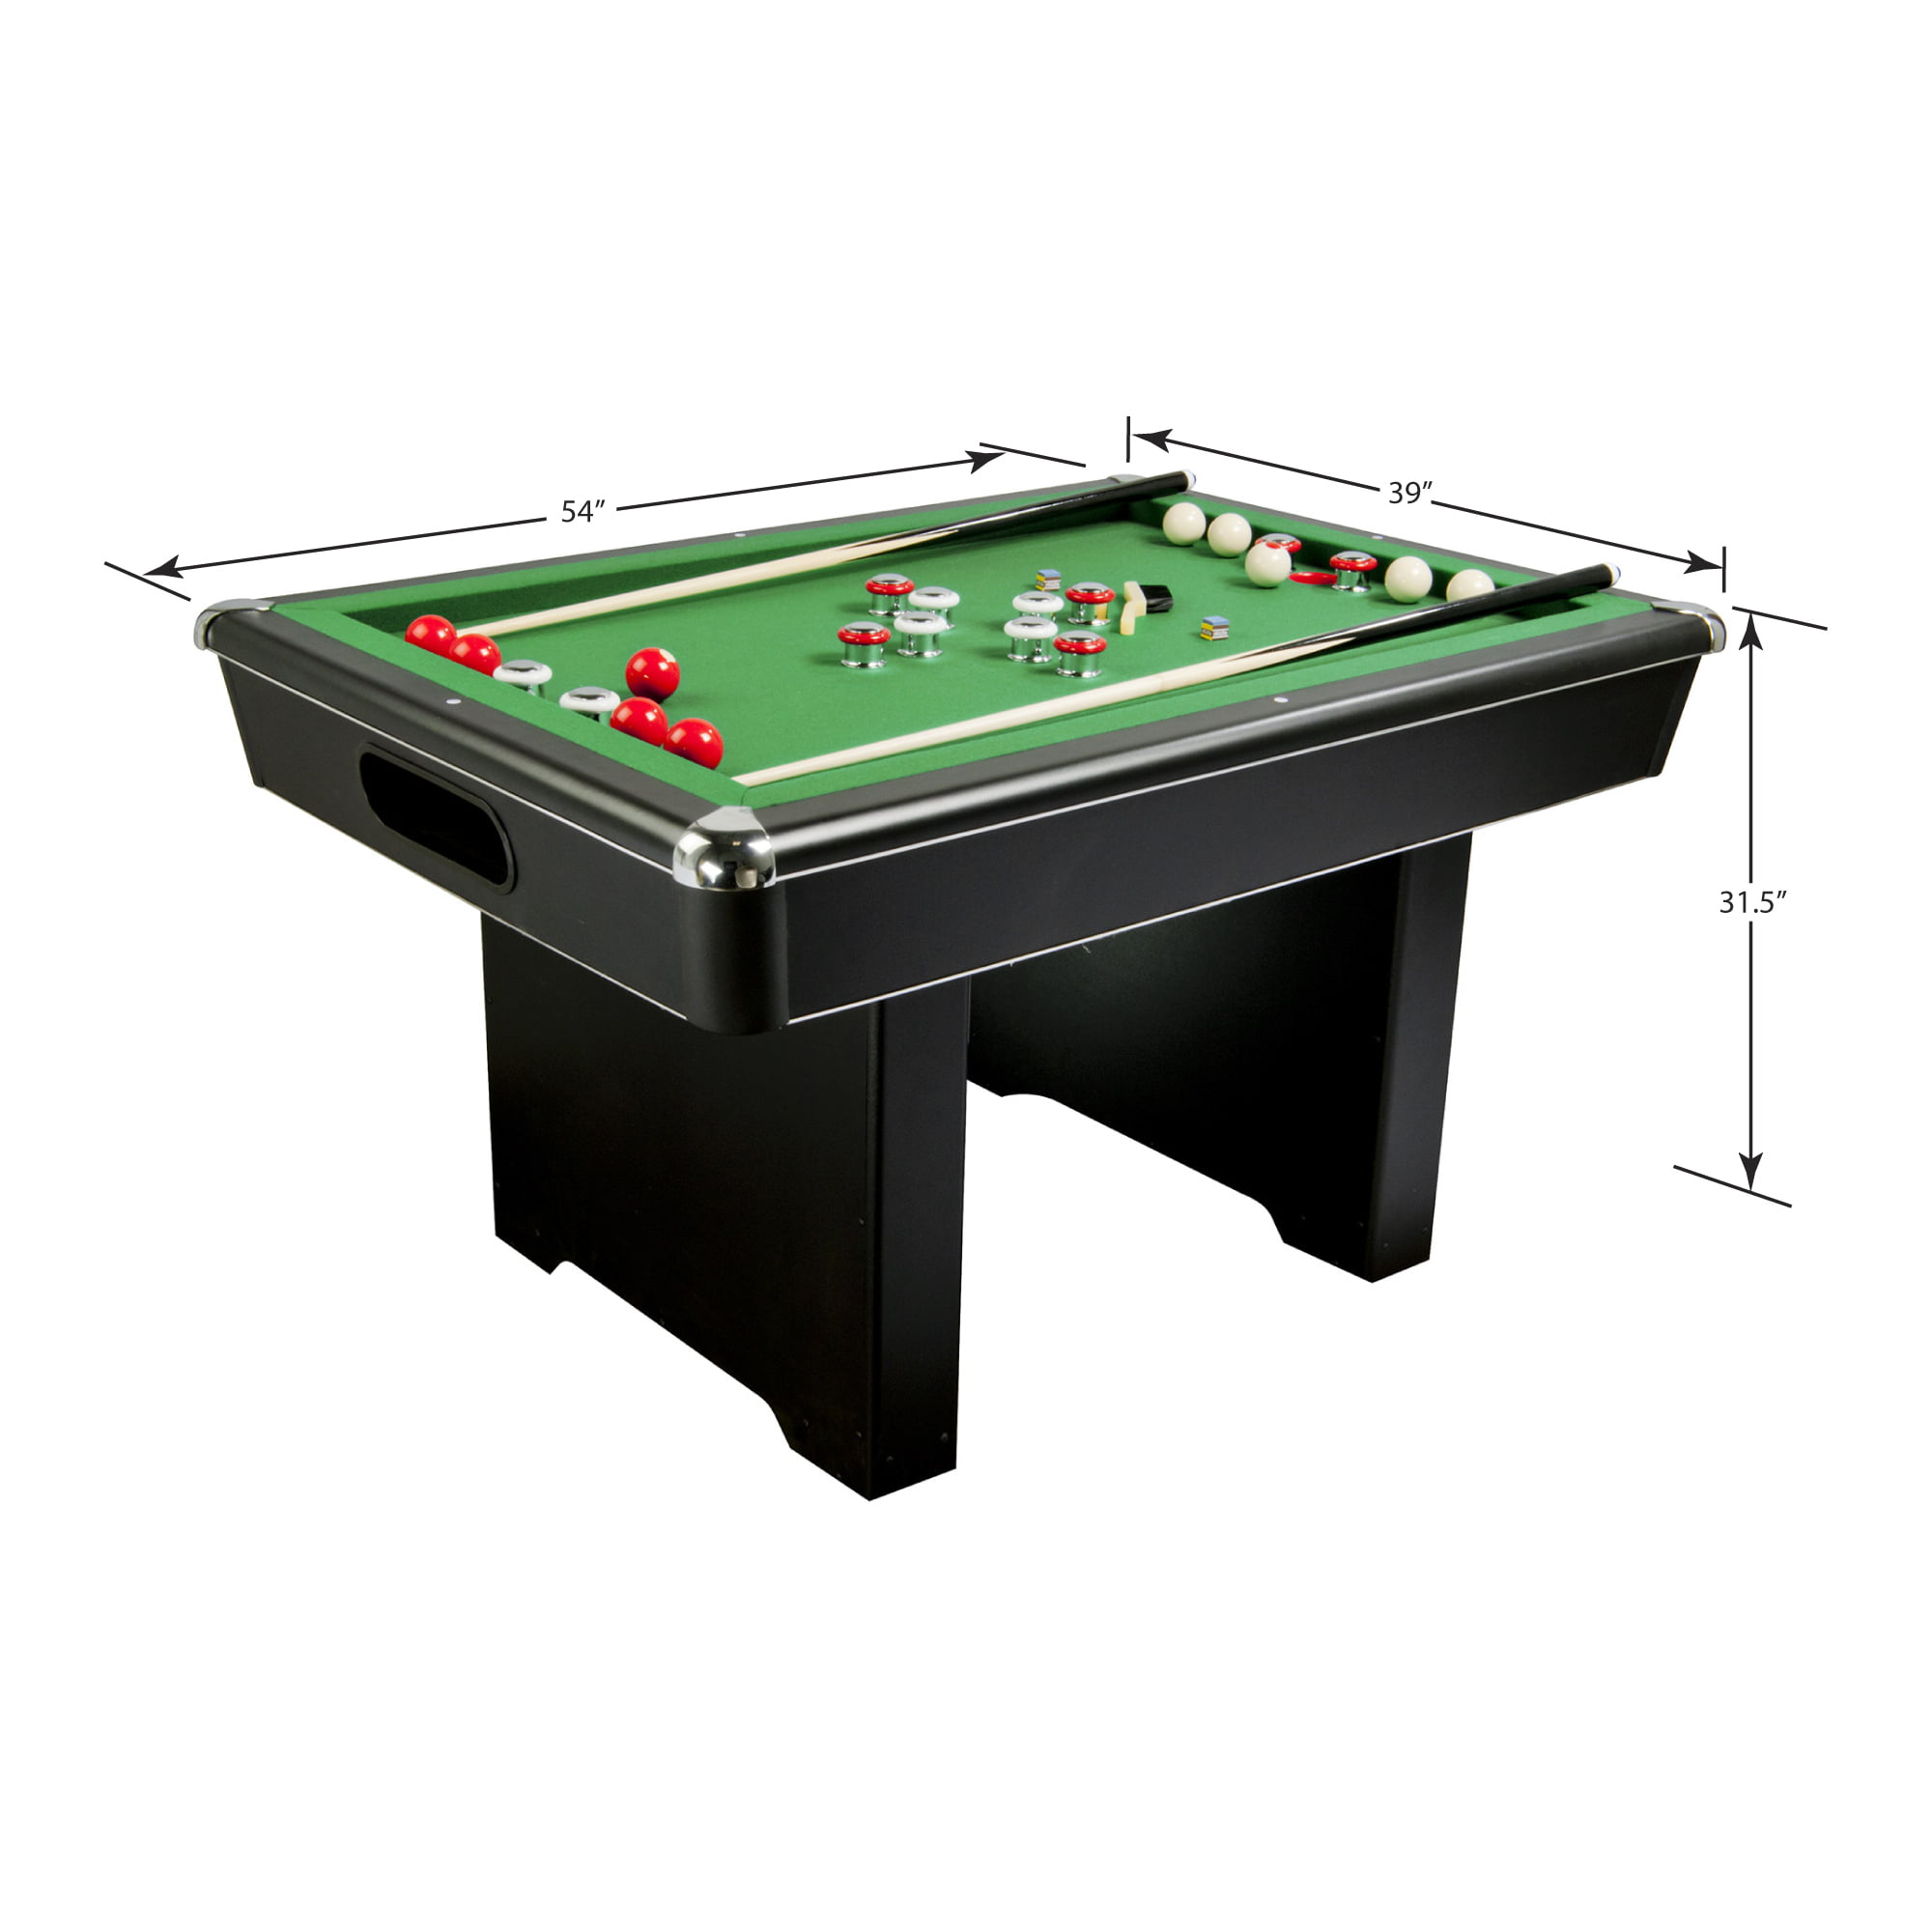 Hathaway Renegade Slate Bumper Pool Table, 54-In, Green - Walmart